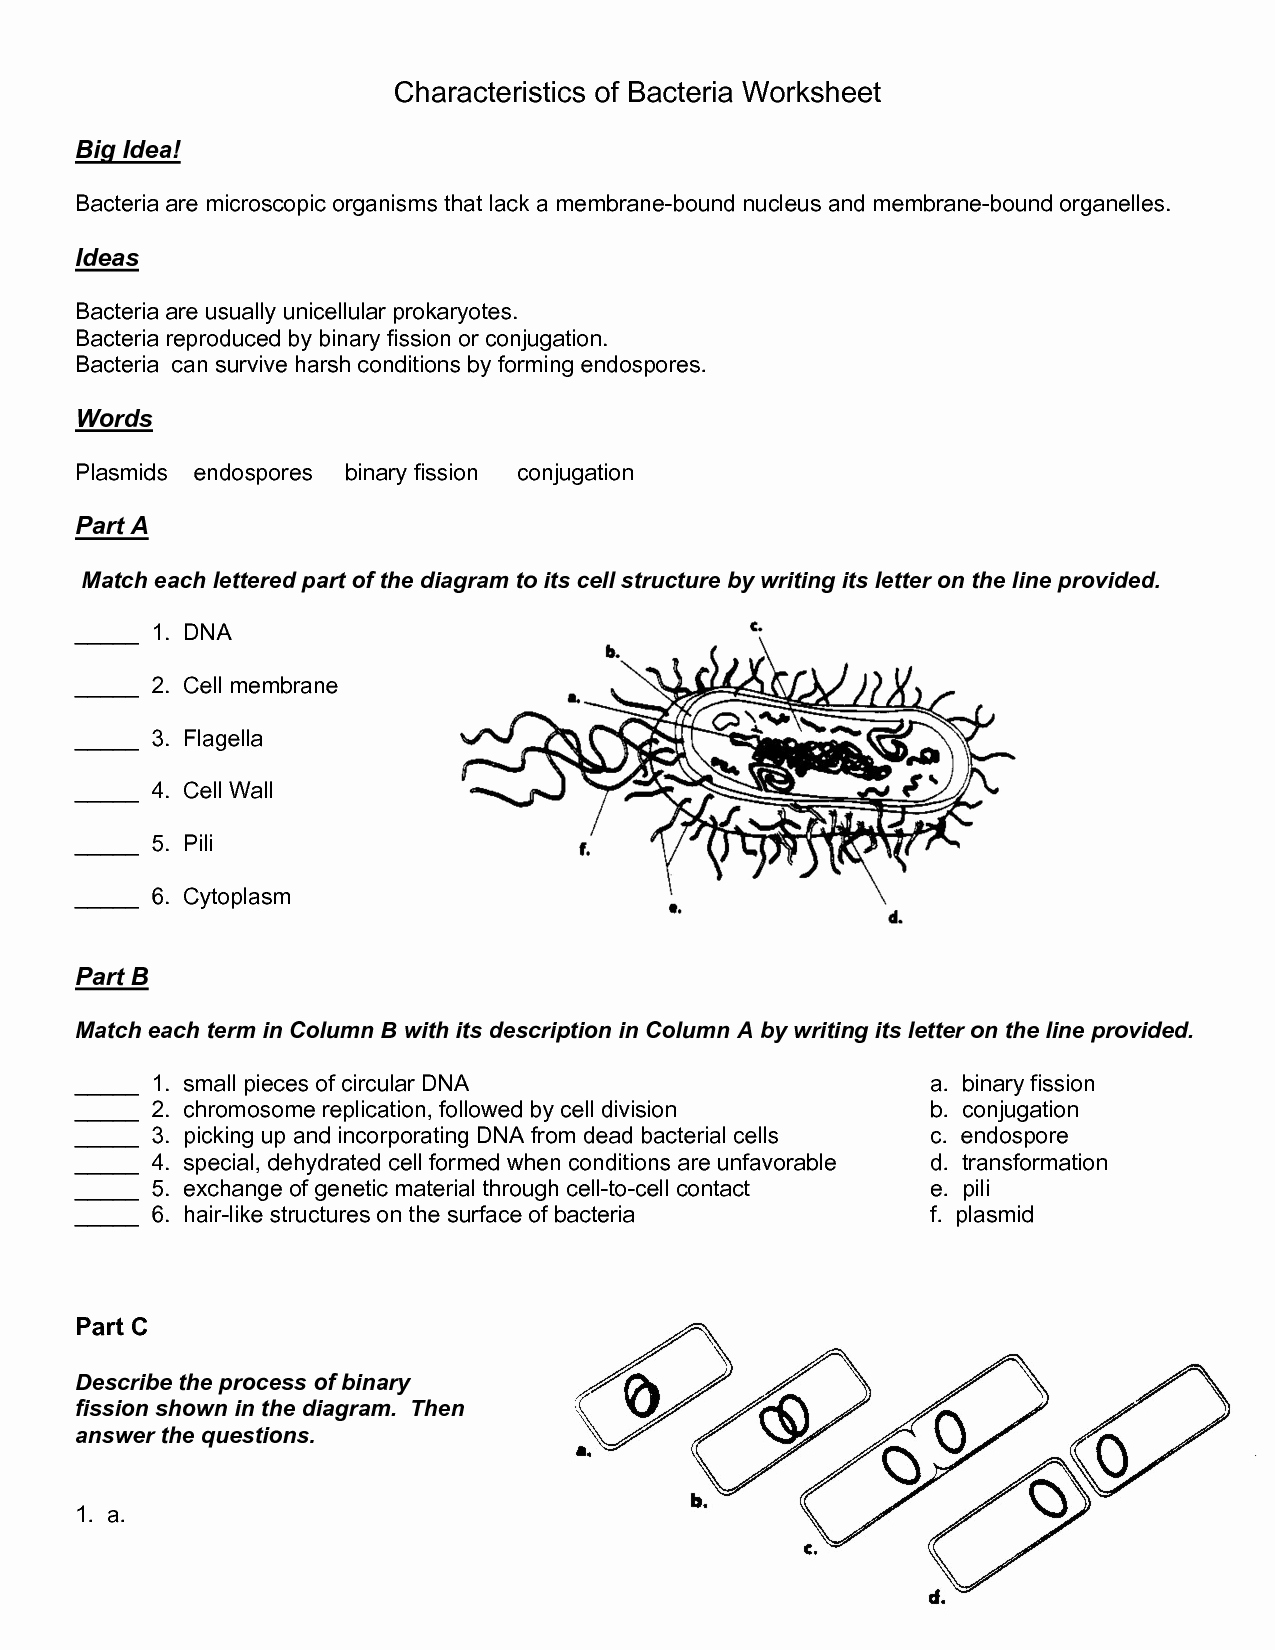 Viruses and Bacteria Worksheet Beautiful 14 Best Of Viruses and Bacteria Worksheets